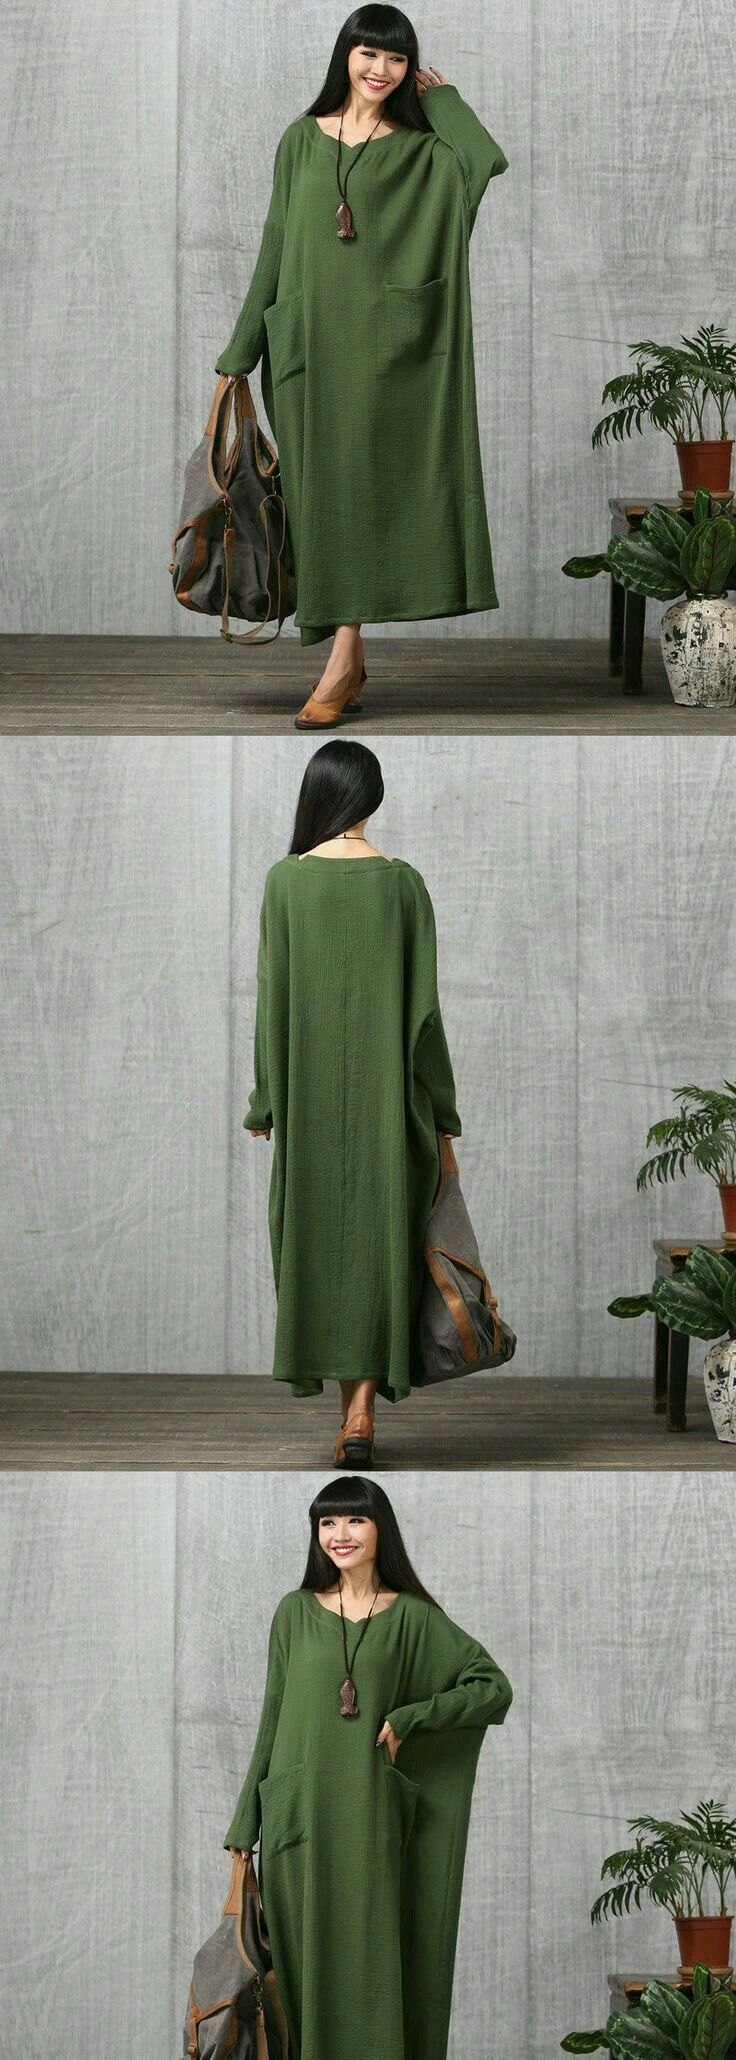 Modest, loose fitting dress